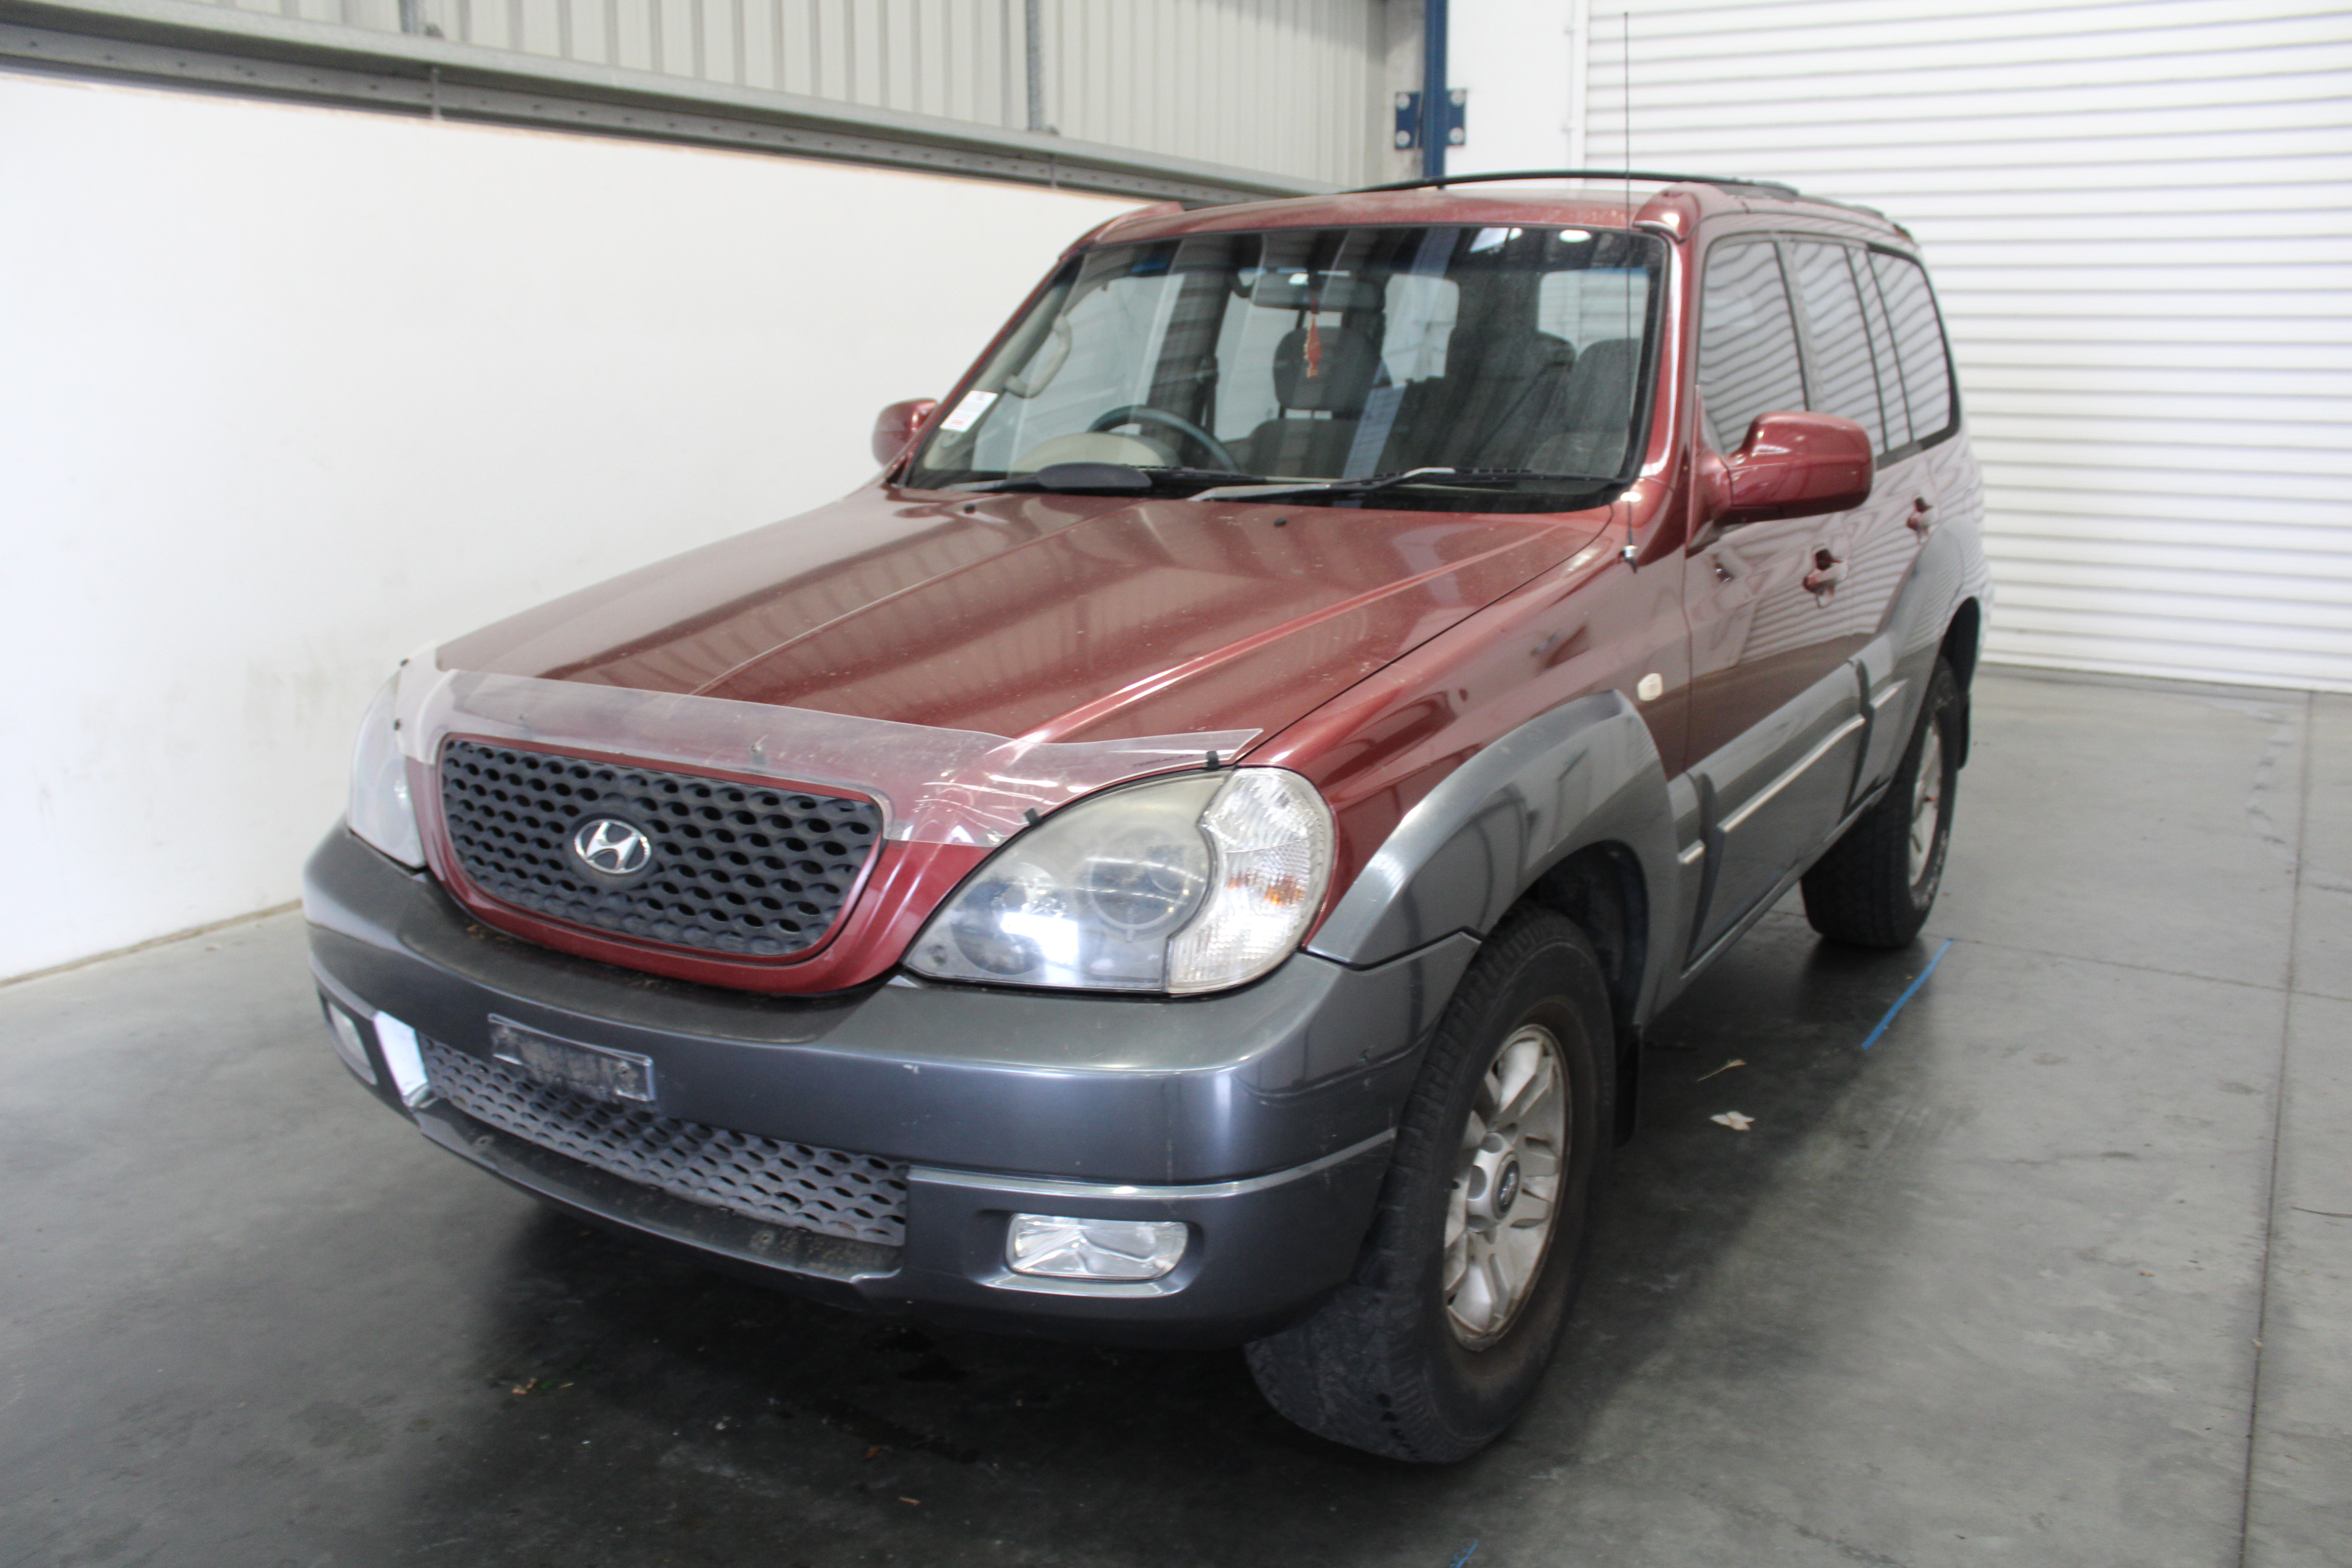 2004 Hyundai Terracan Automatic 7 Seats Wagon